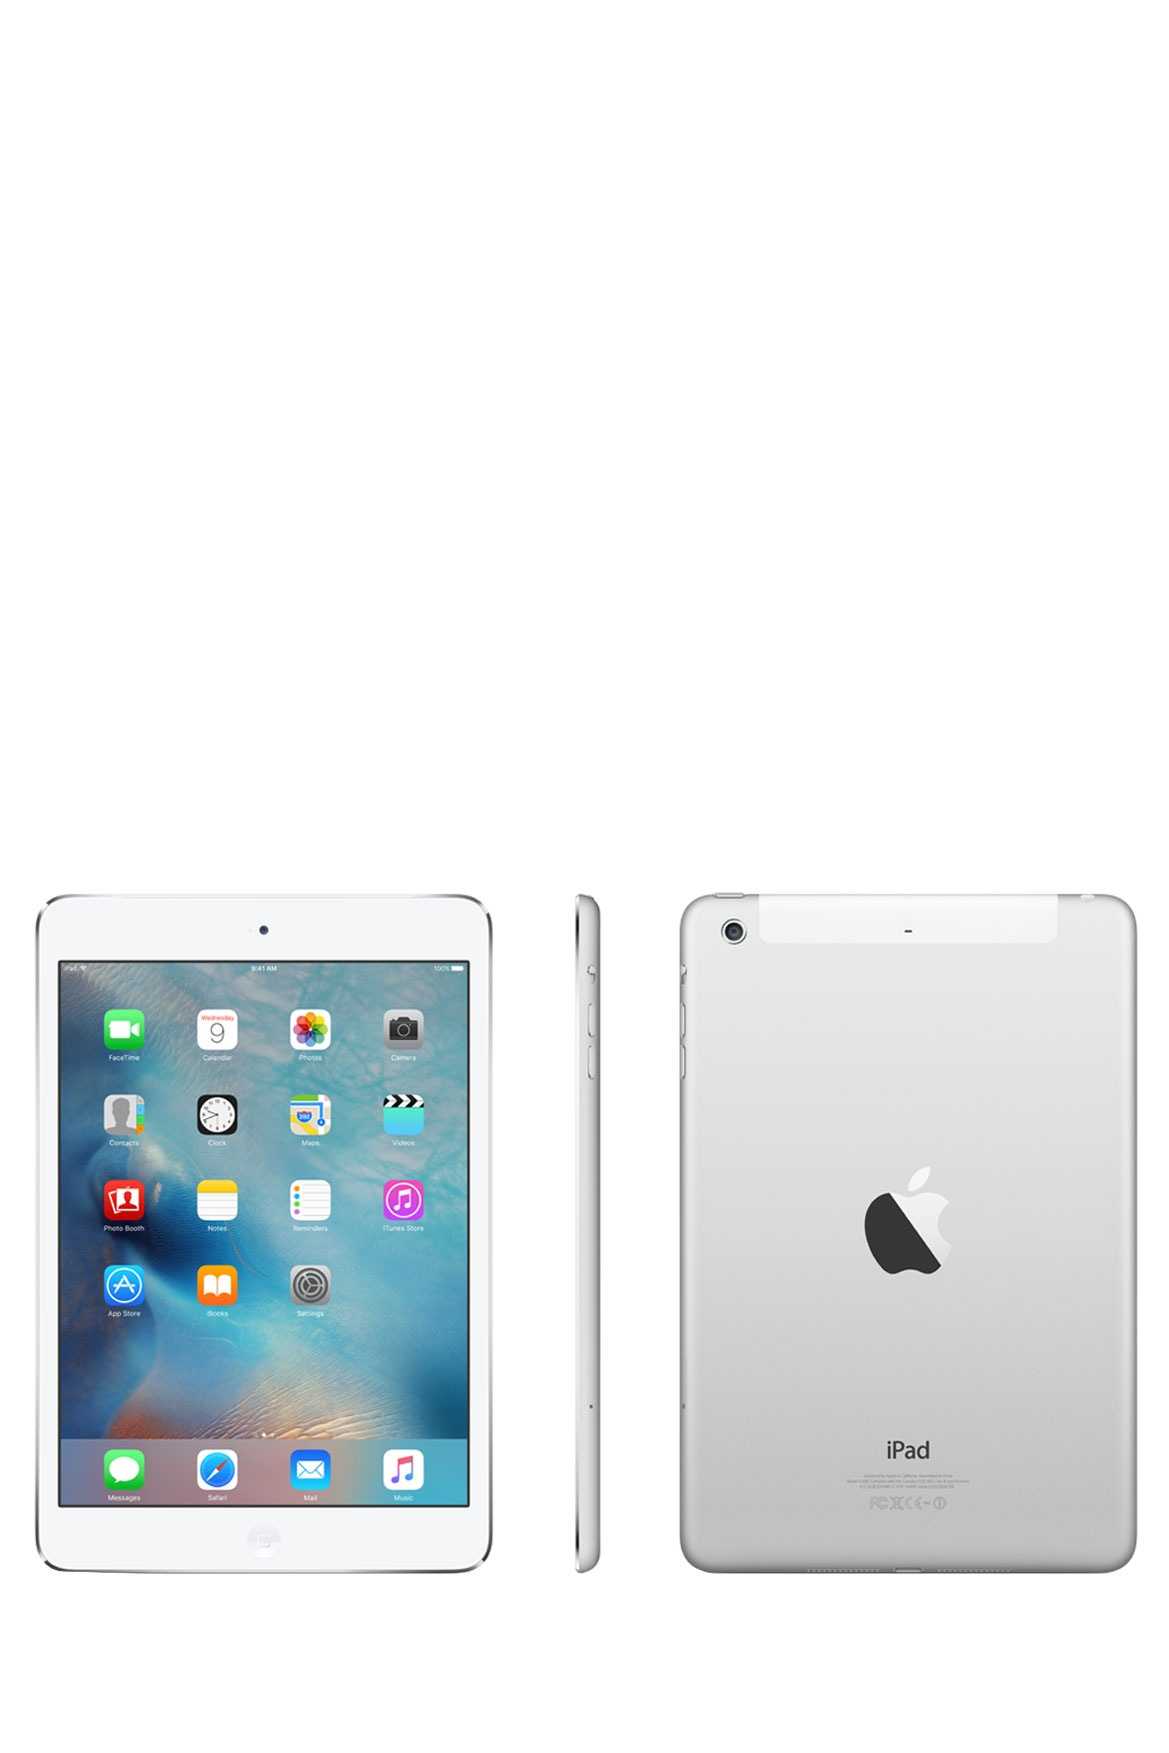 Apple Ipad Mini Retina Display 32gb Wifi And Cellular Silver Me824b Cell With Wi Fi Lte Myer Online Categoryname Details 2 Has A Beautiful 79